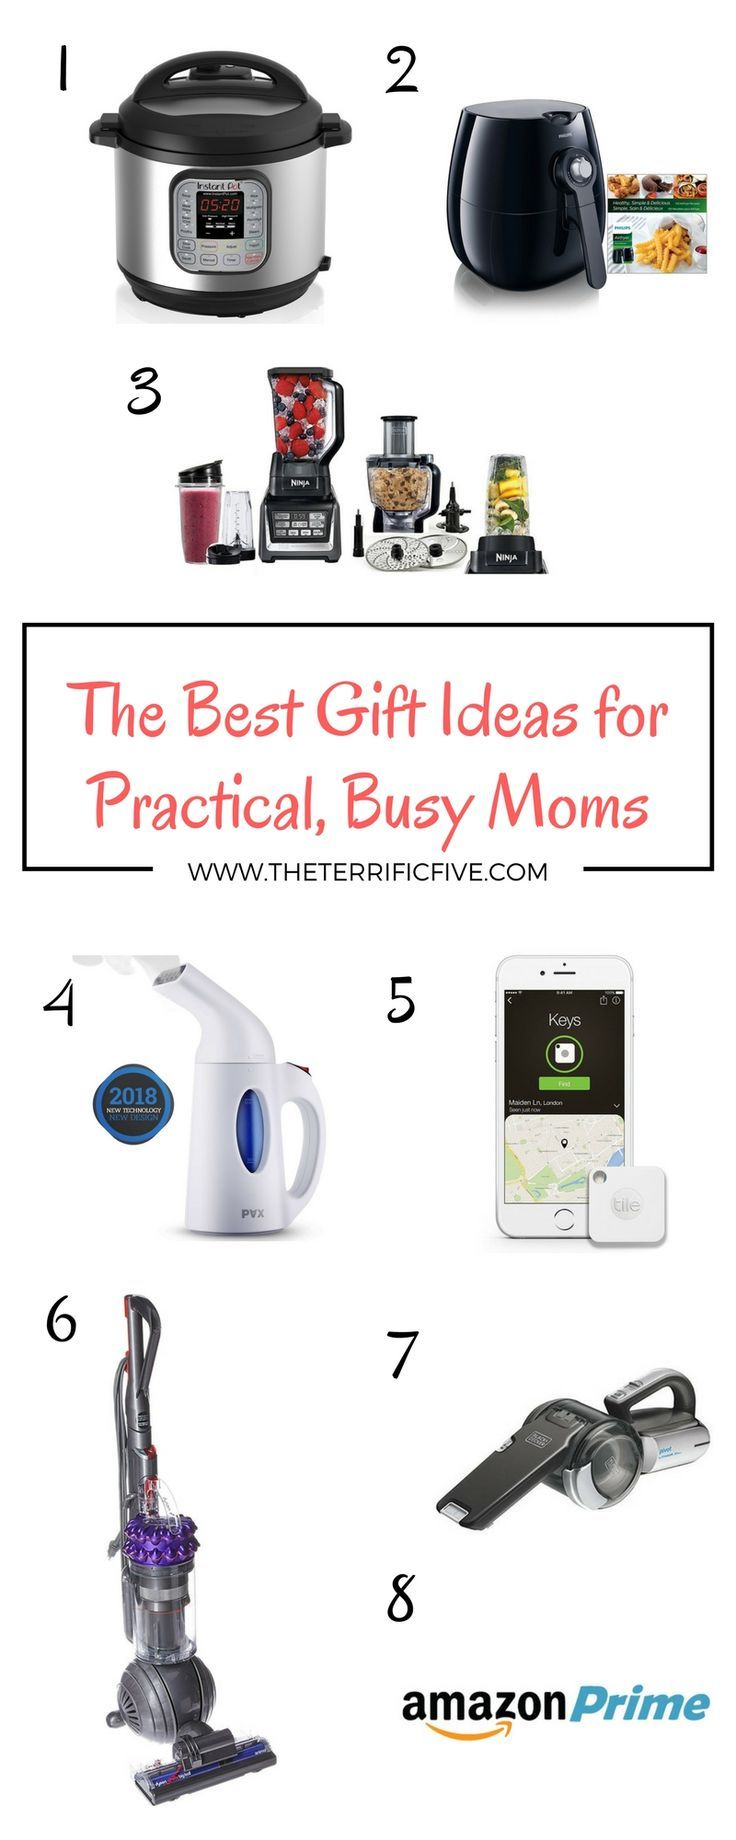 The Best Gift Ideas for Practical, Busy Moms | Mom christmas gifts ...